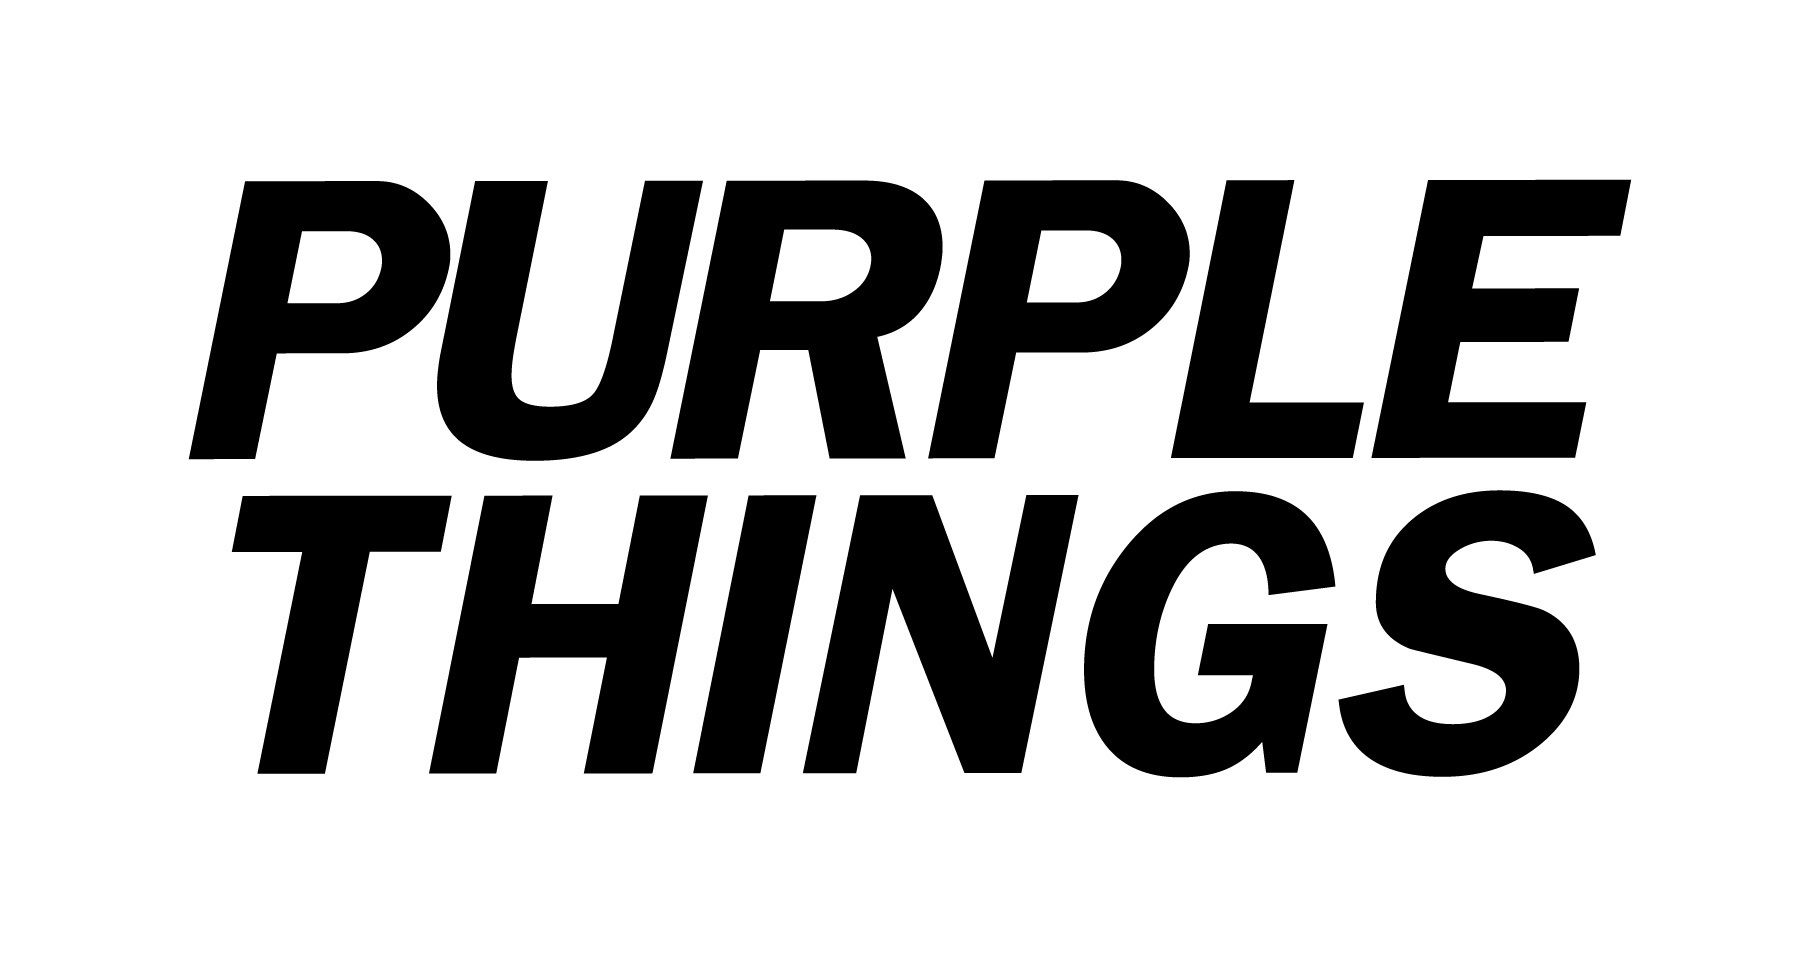 PURPLE THINGS